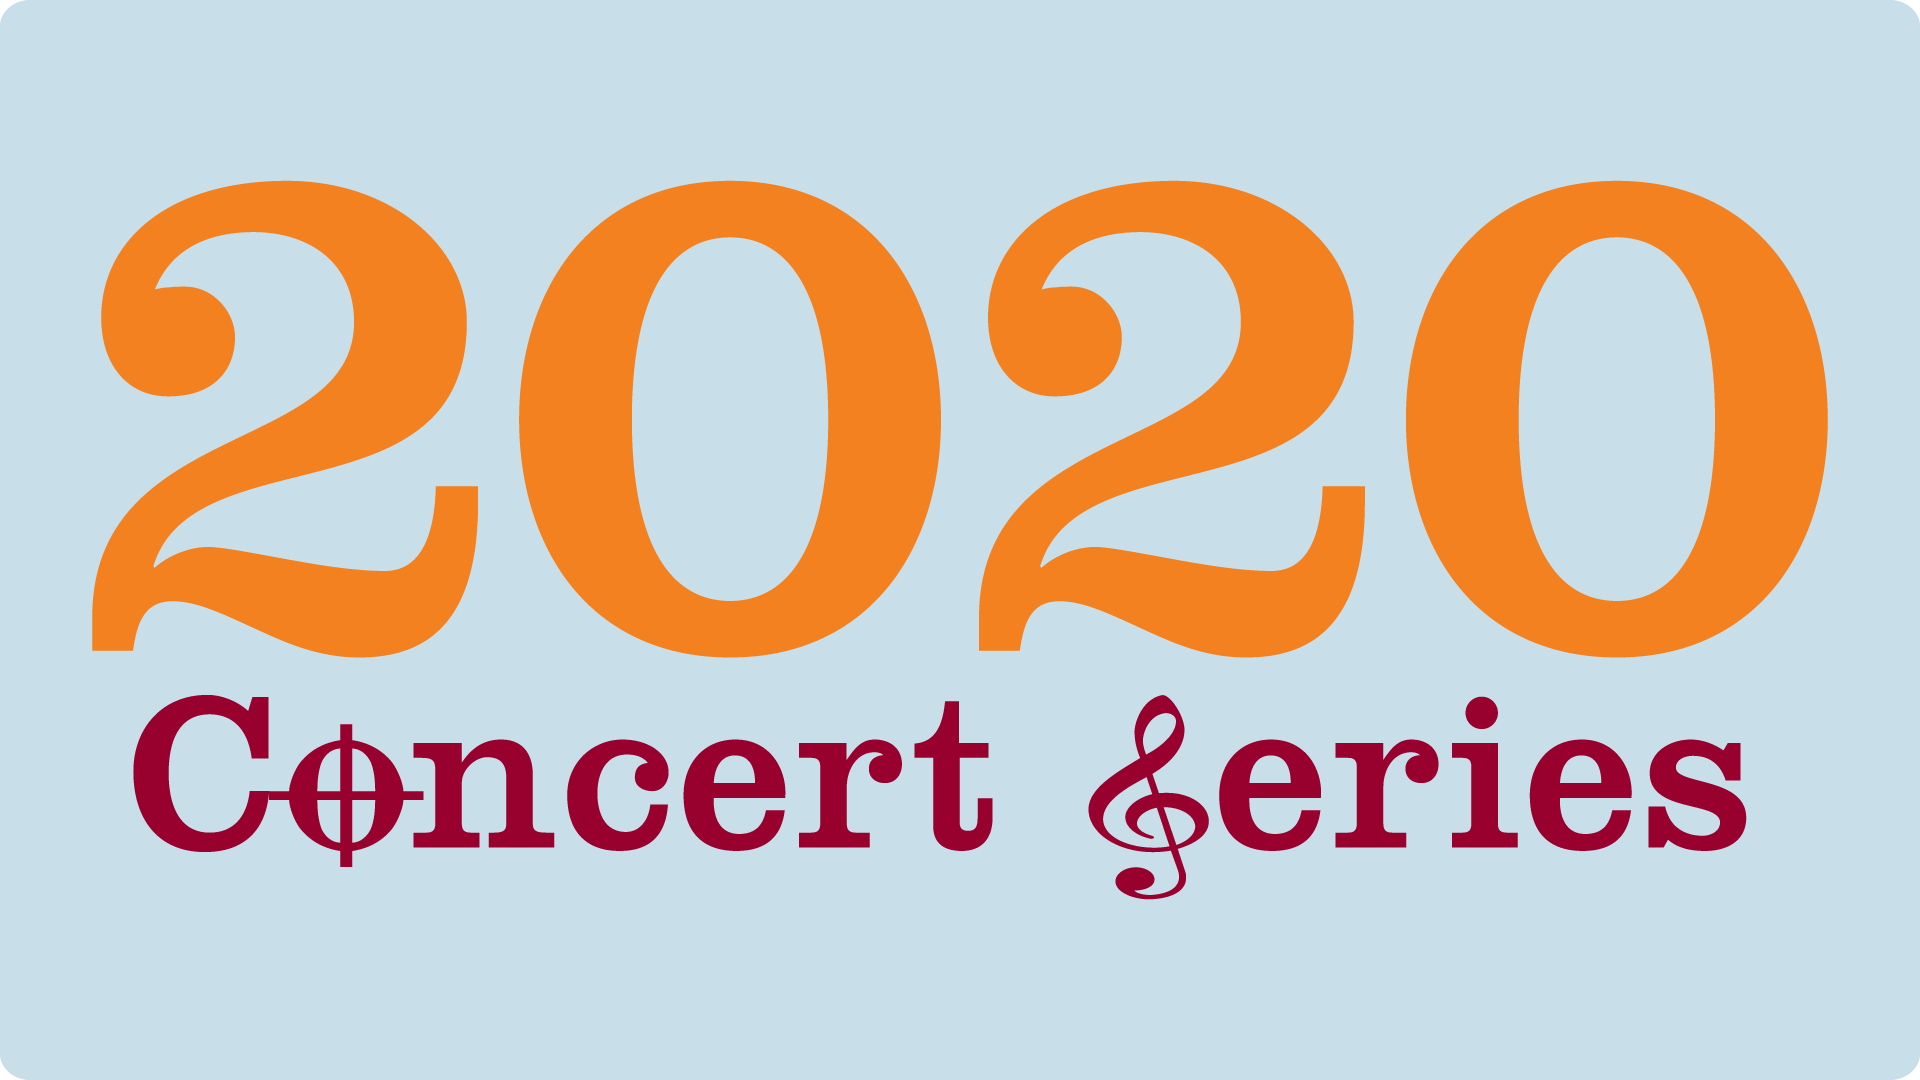 graphic of CSHL Concert Series 2020 logo